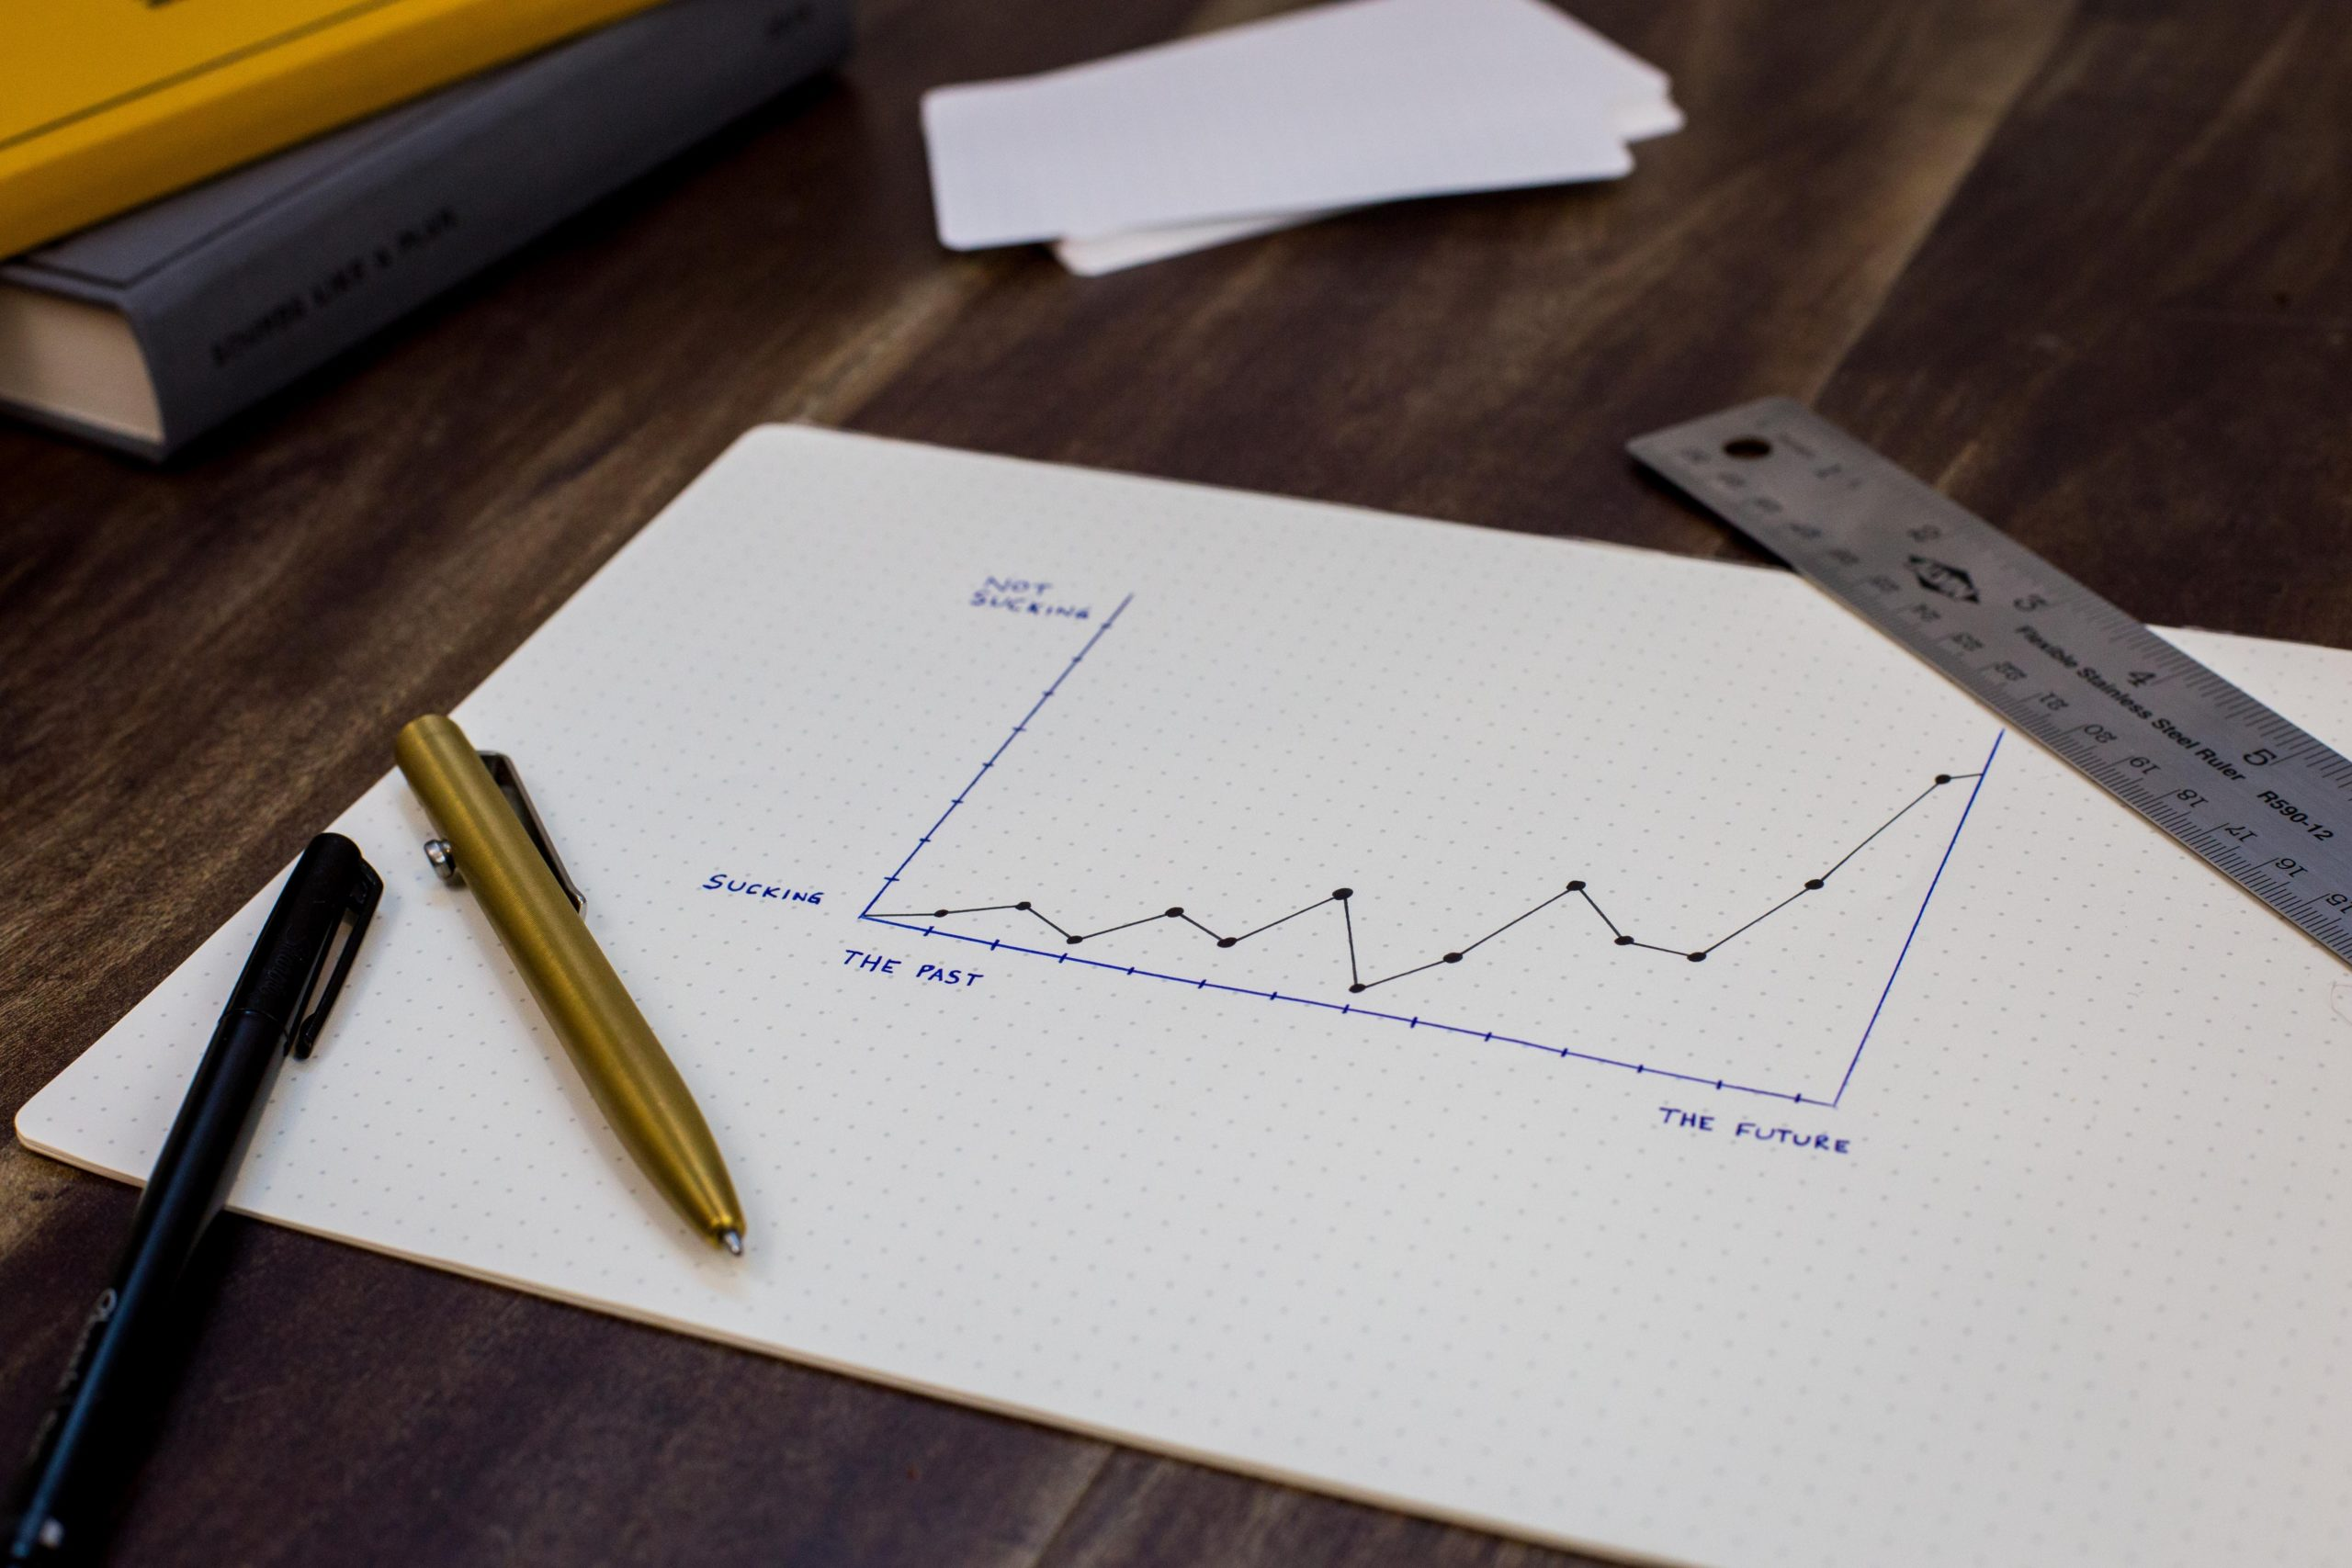 Desk displaying a graph